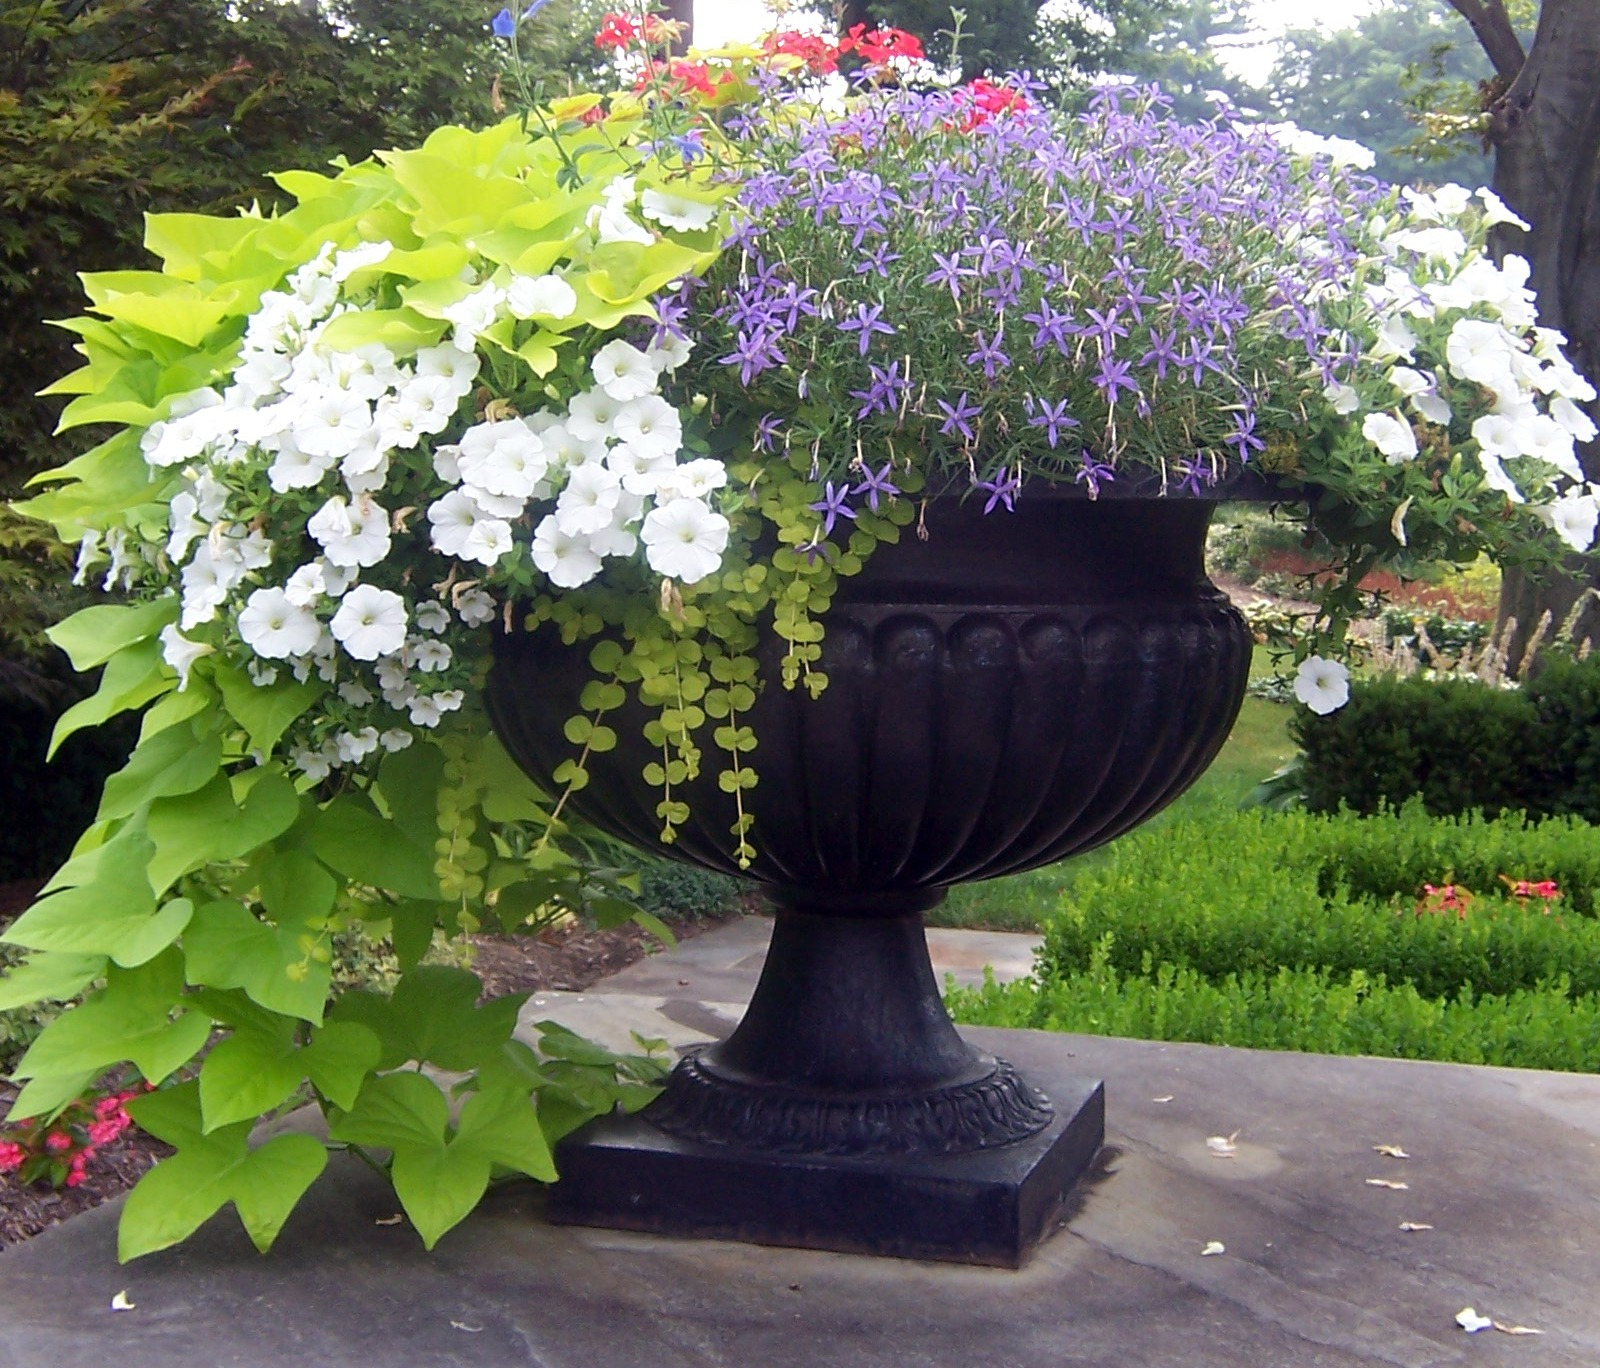 Containers With Pizazz ! Not Your Ordinary Container! The Garden